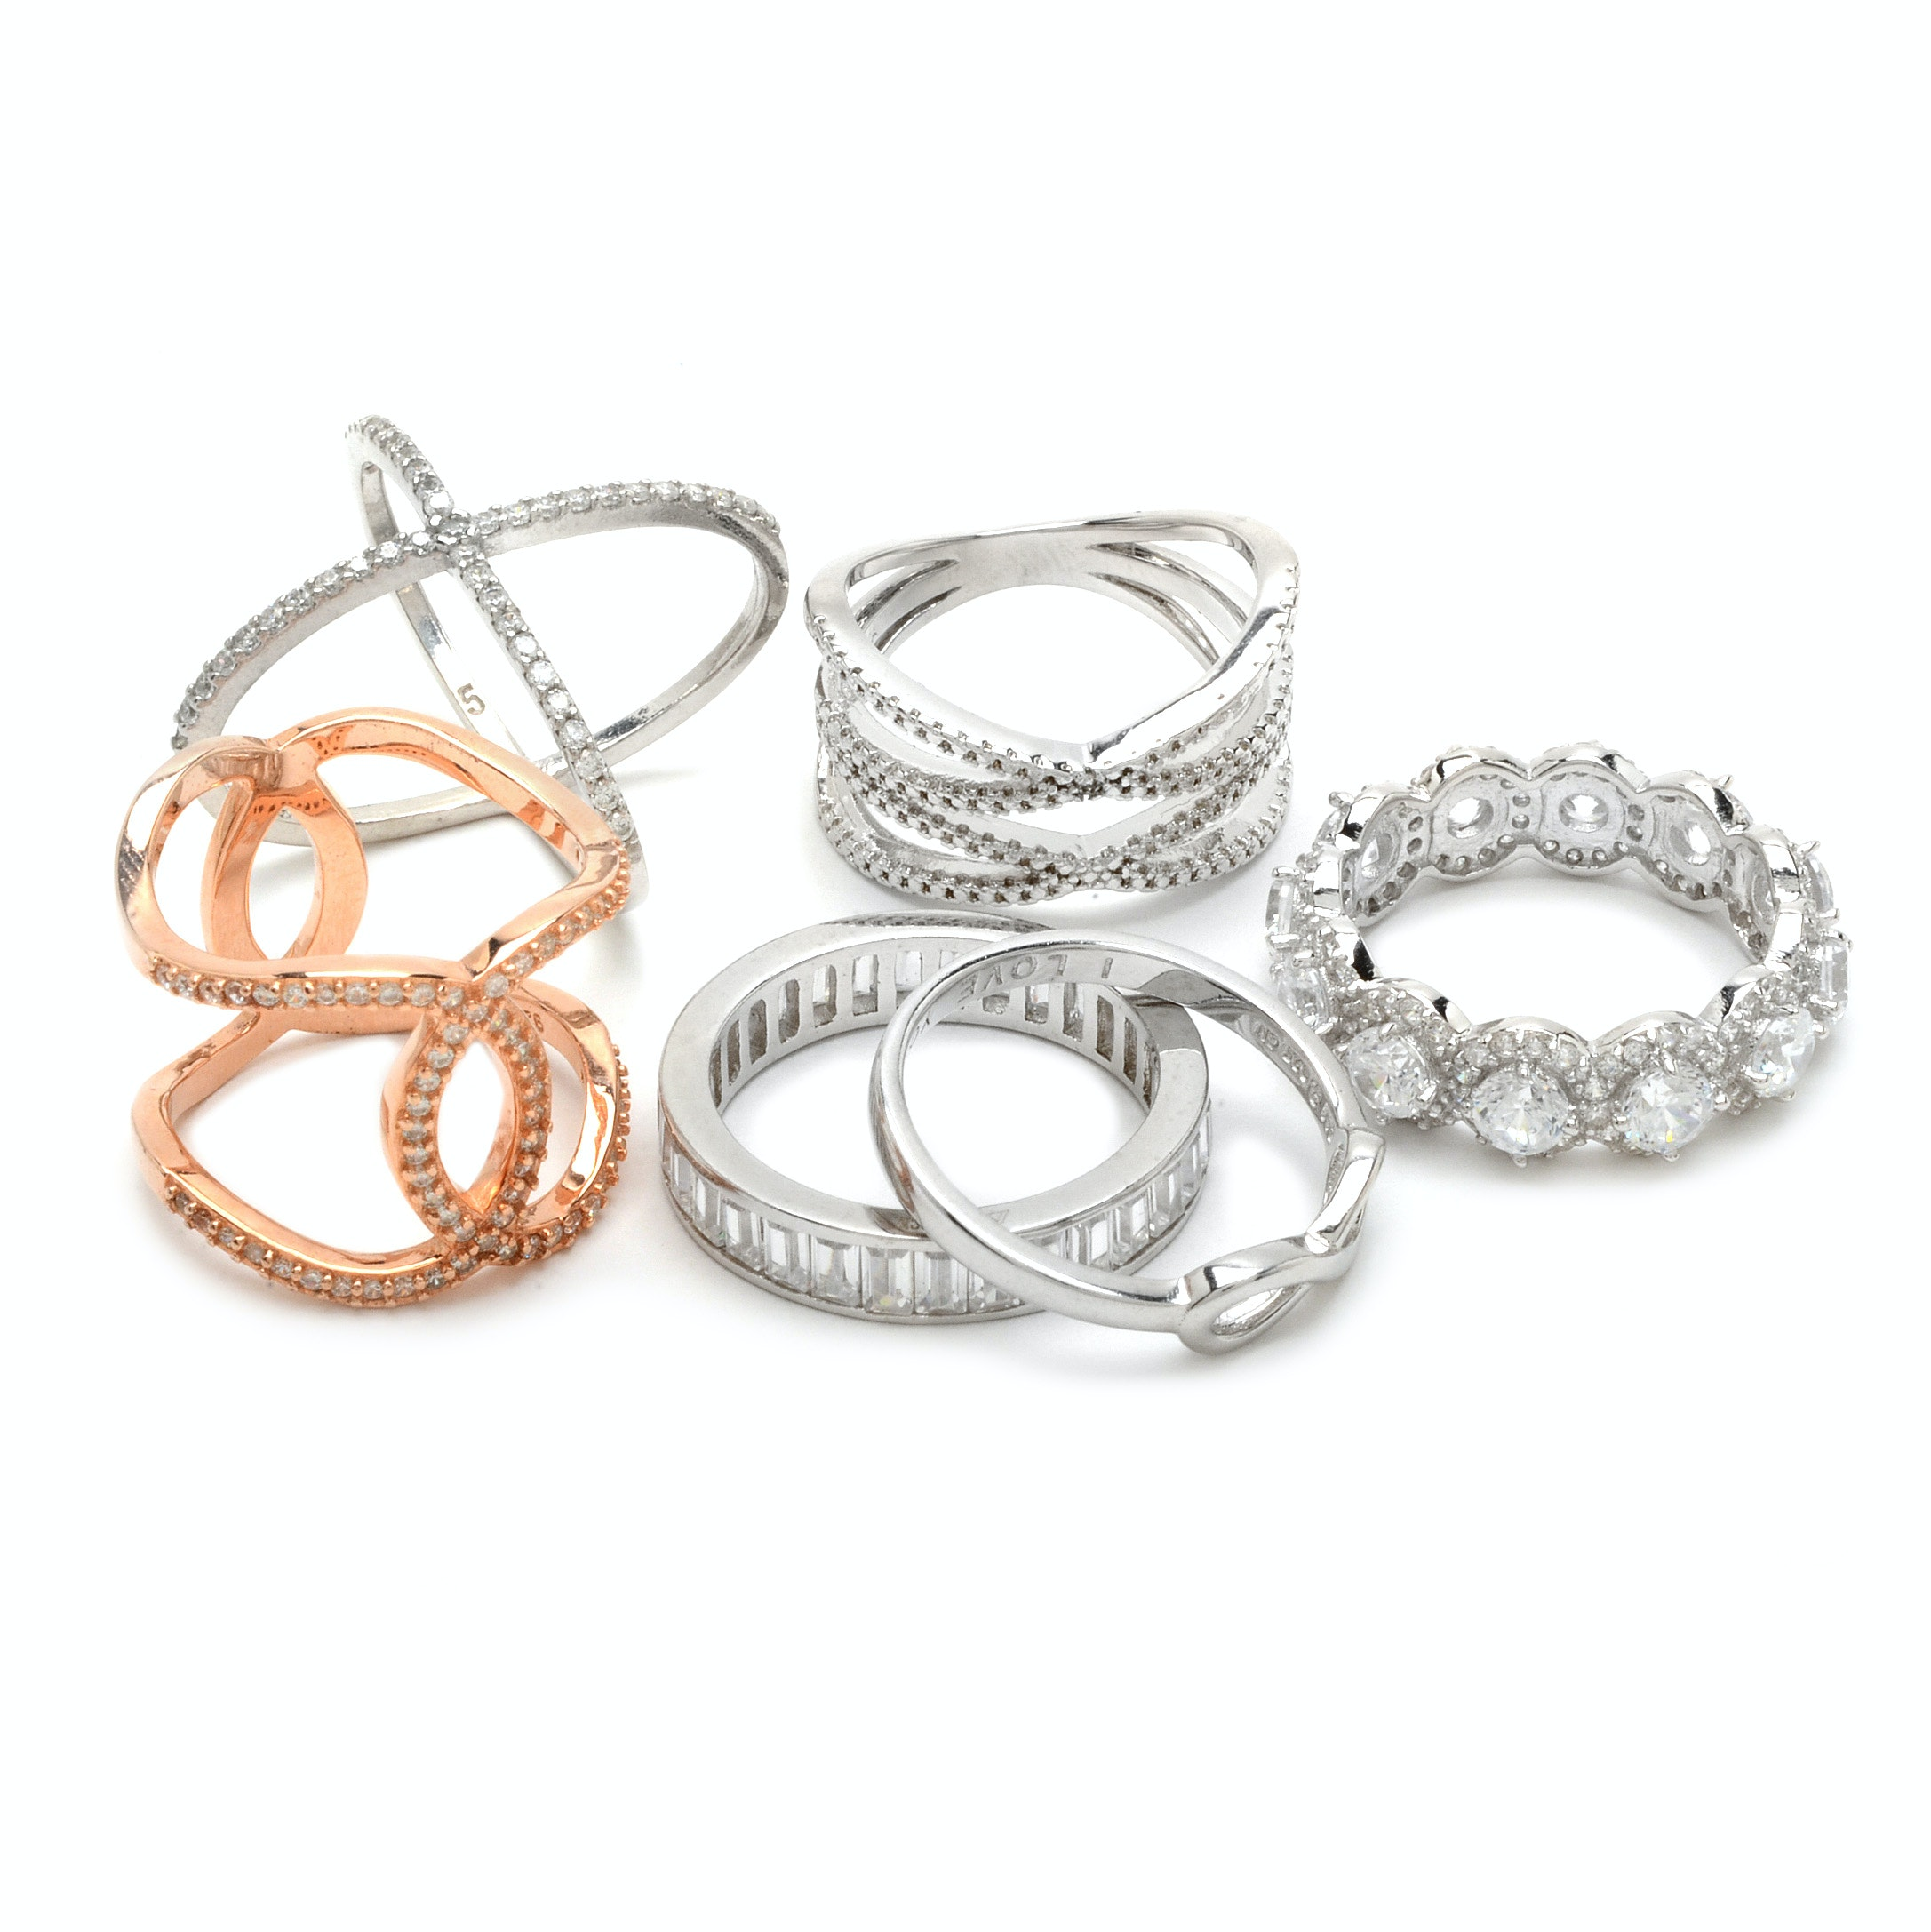 Sterling Silver Fashion Rings Including Cubic Zirconia